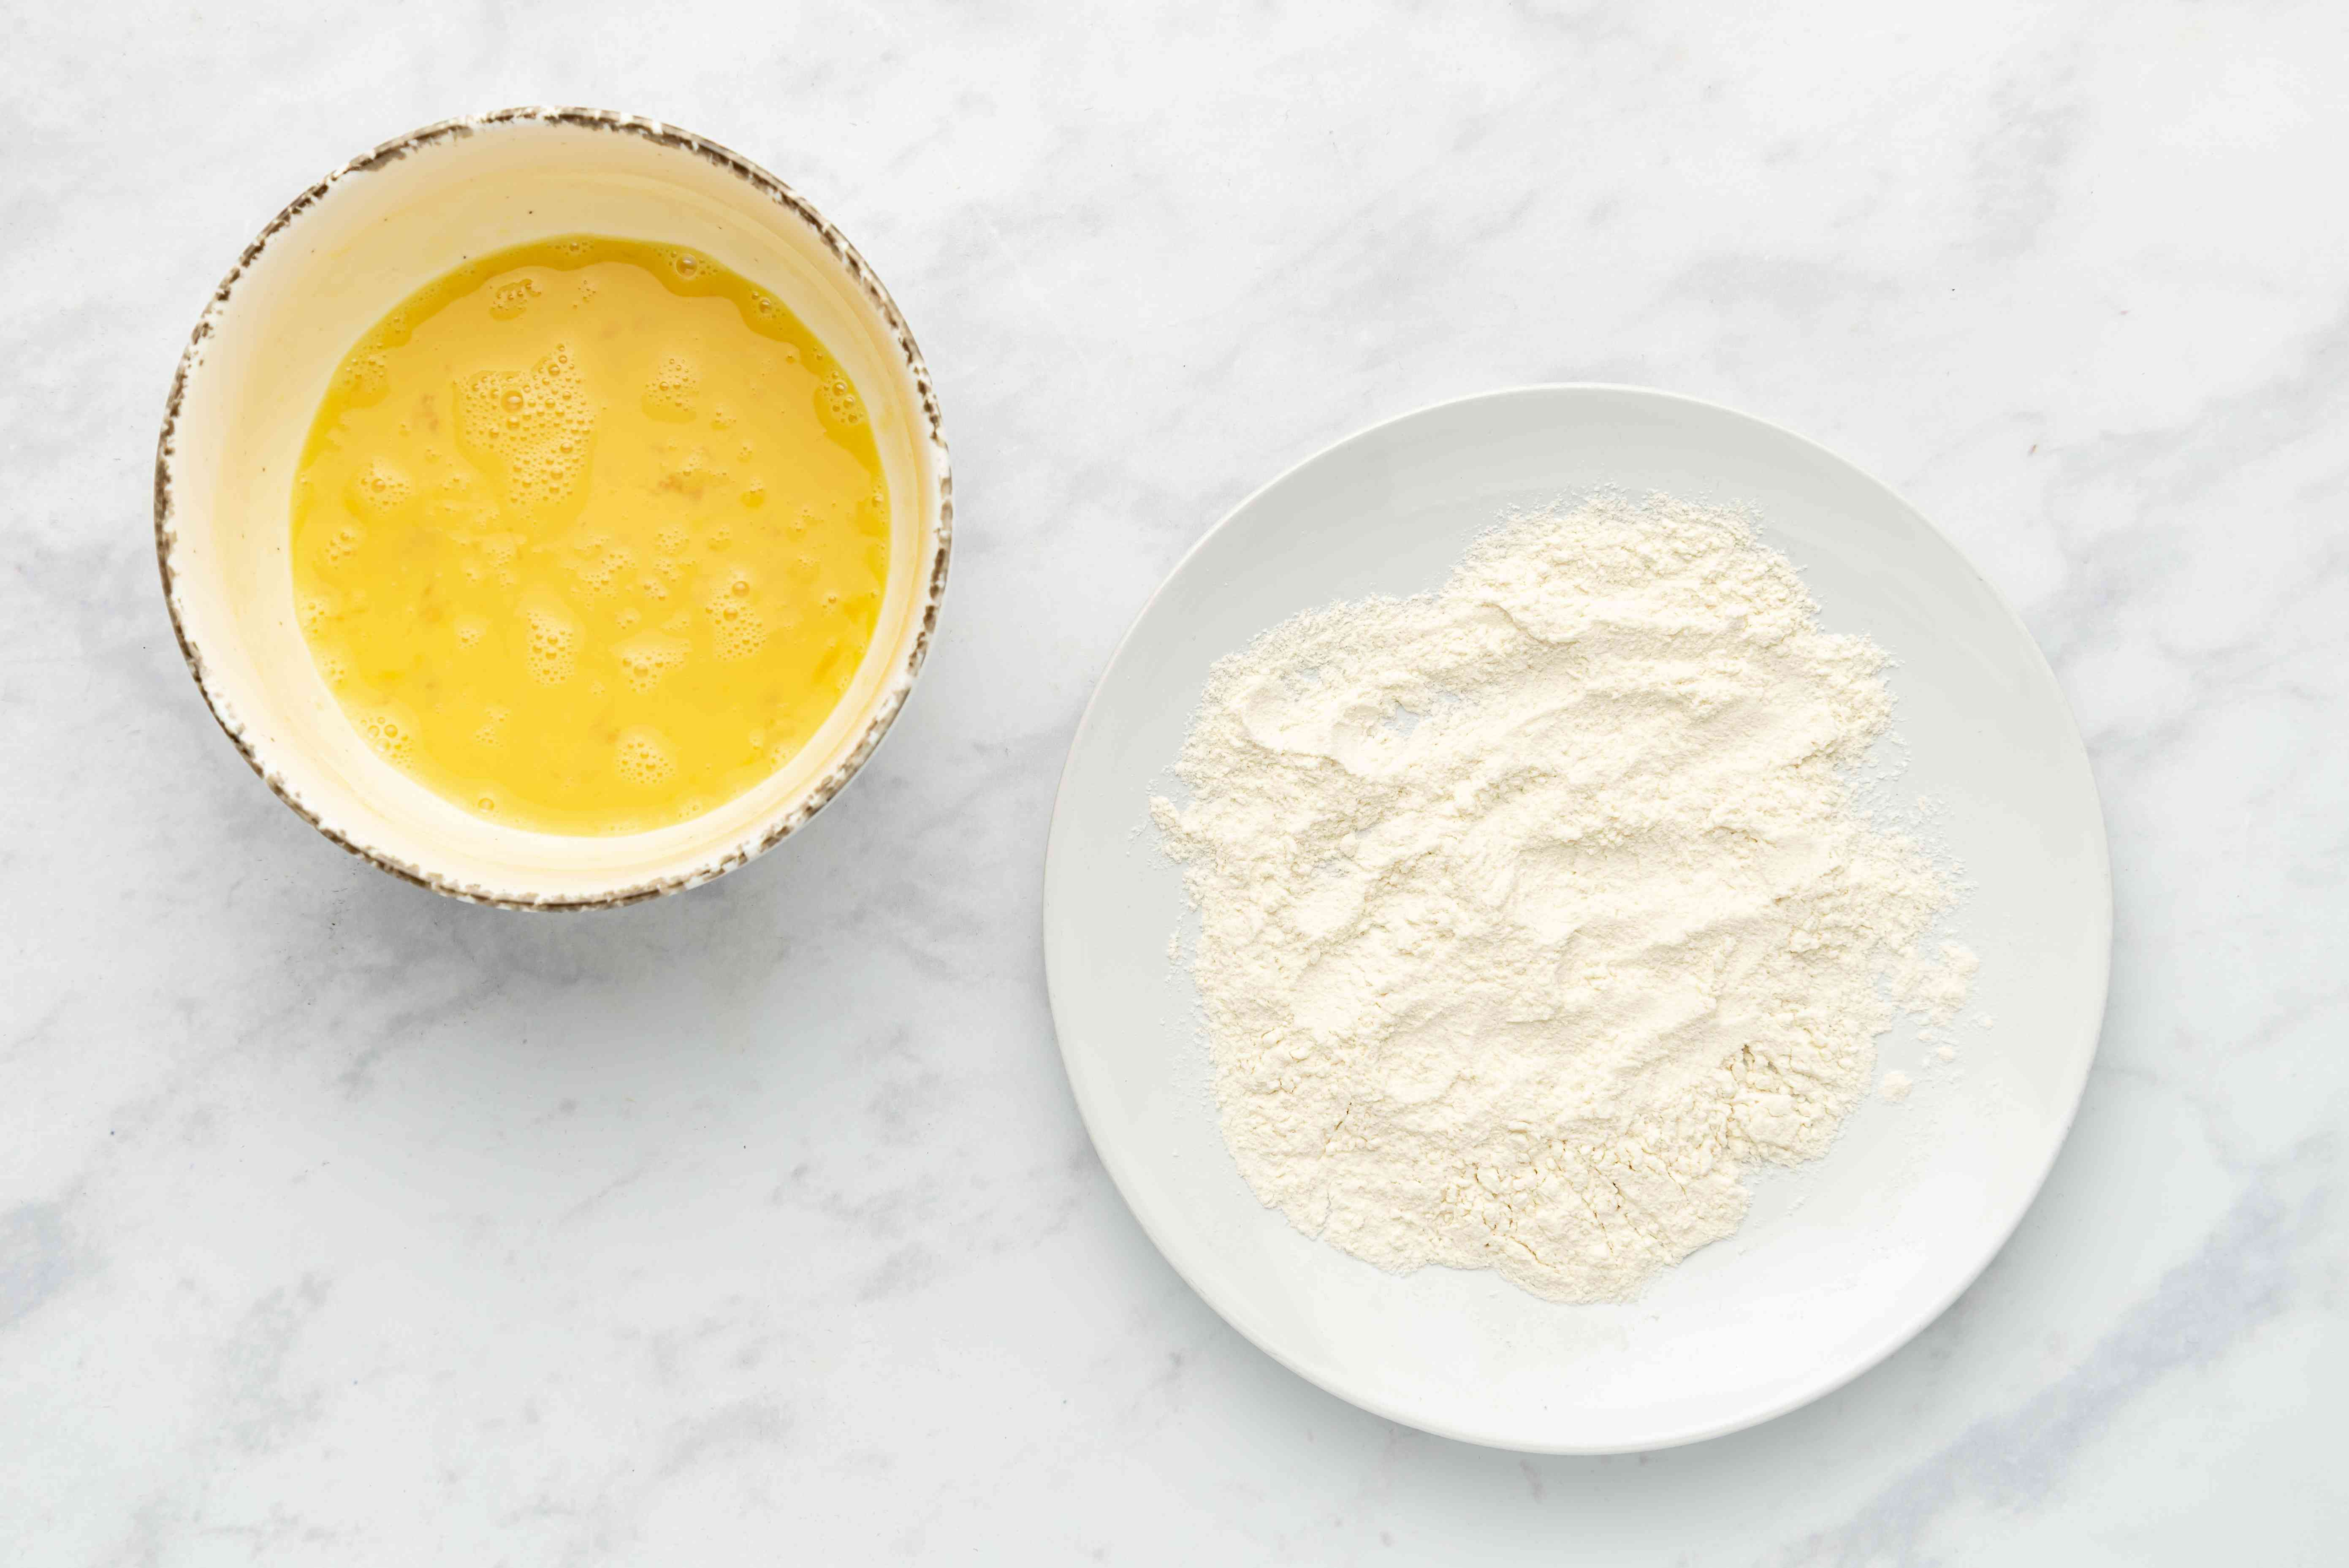 egg mixture in a bowl, flour mixture in a bowl